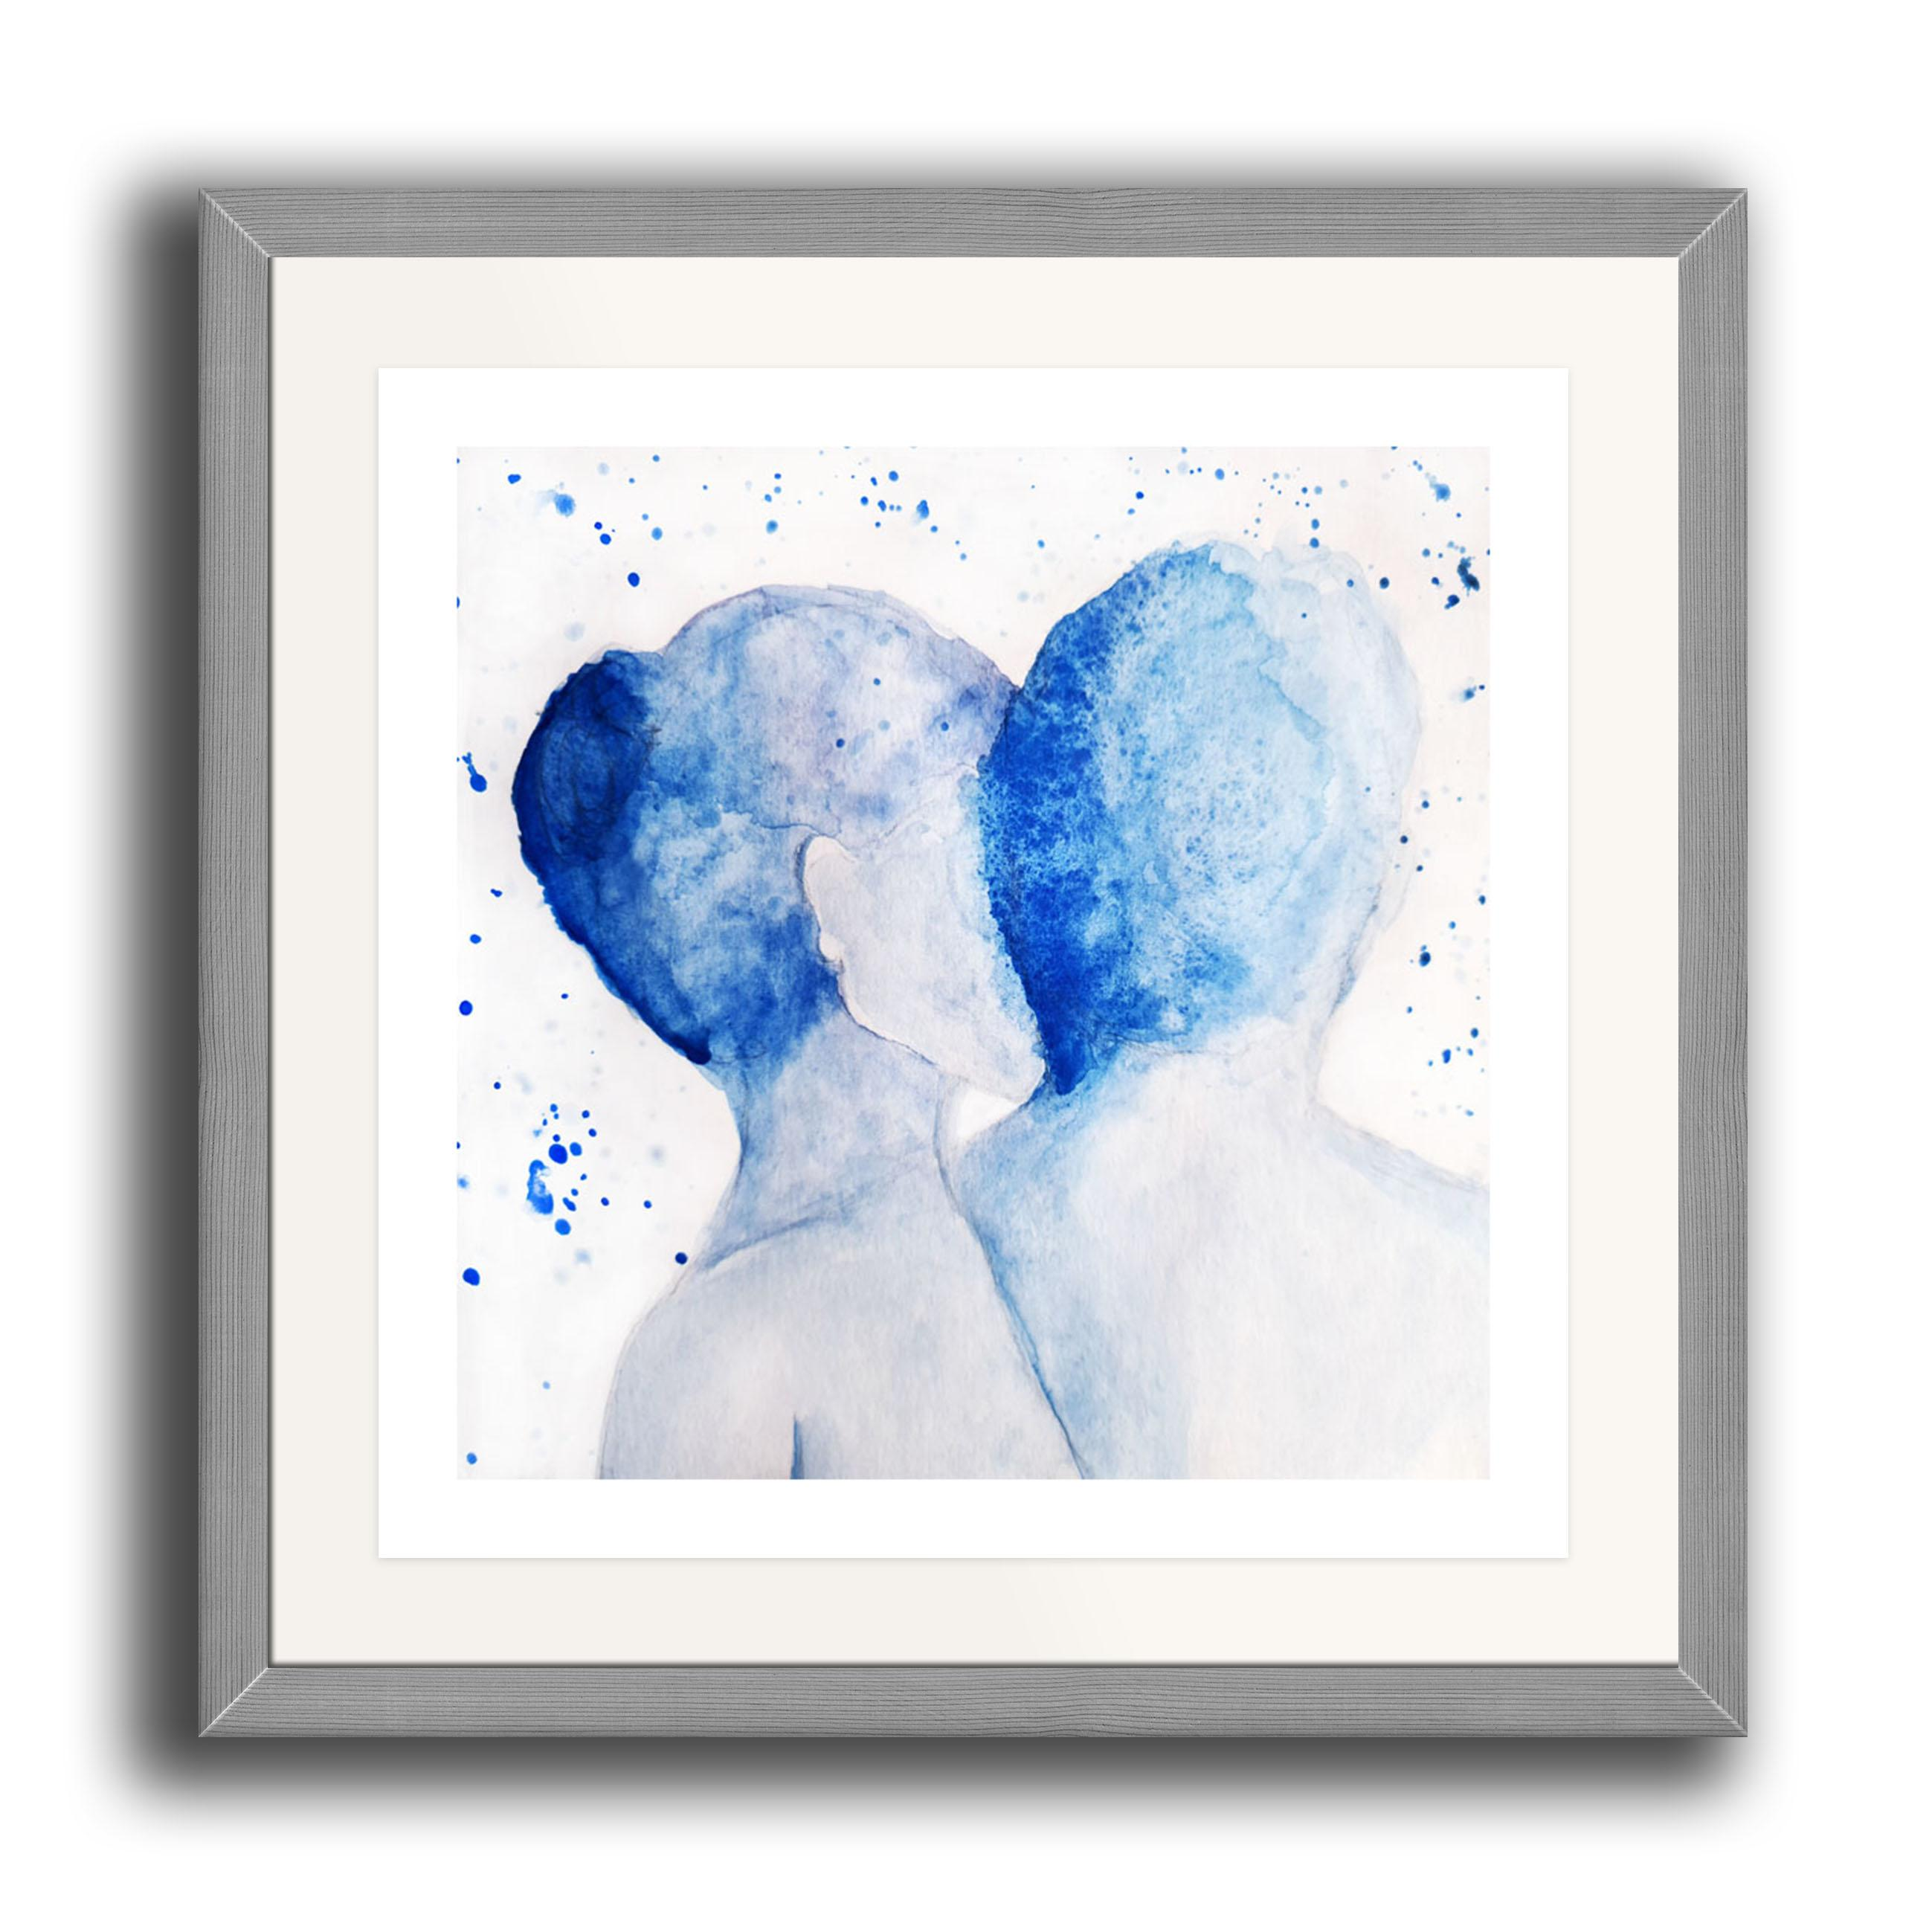 A square watercolour print by Clarrie-Anne on eco fine art paper titled Just Us showing a male and female facing away from the viewer in a partial embrace. The image is set in a grey coloured picture frame.